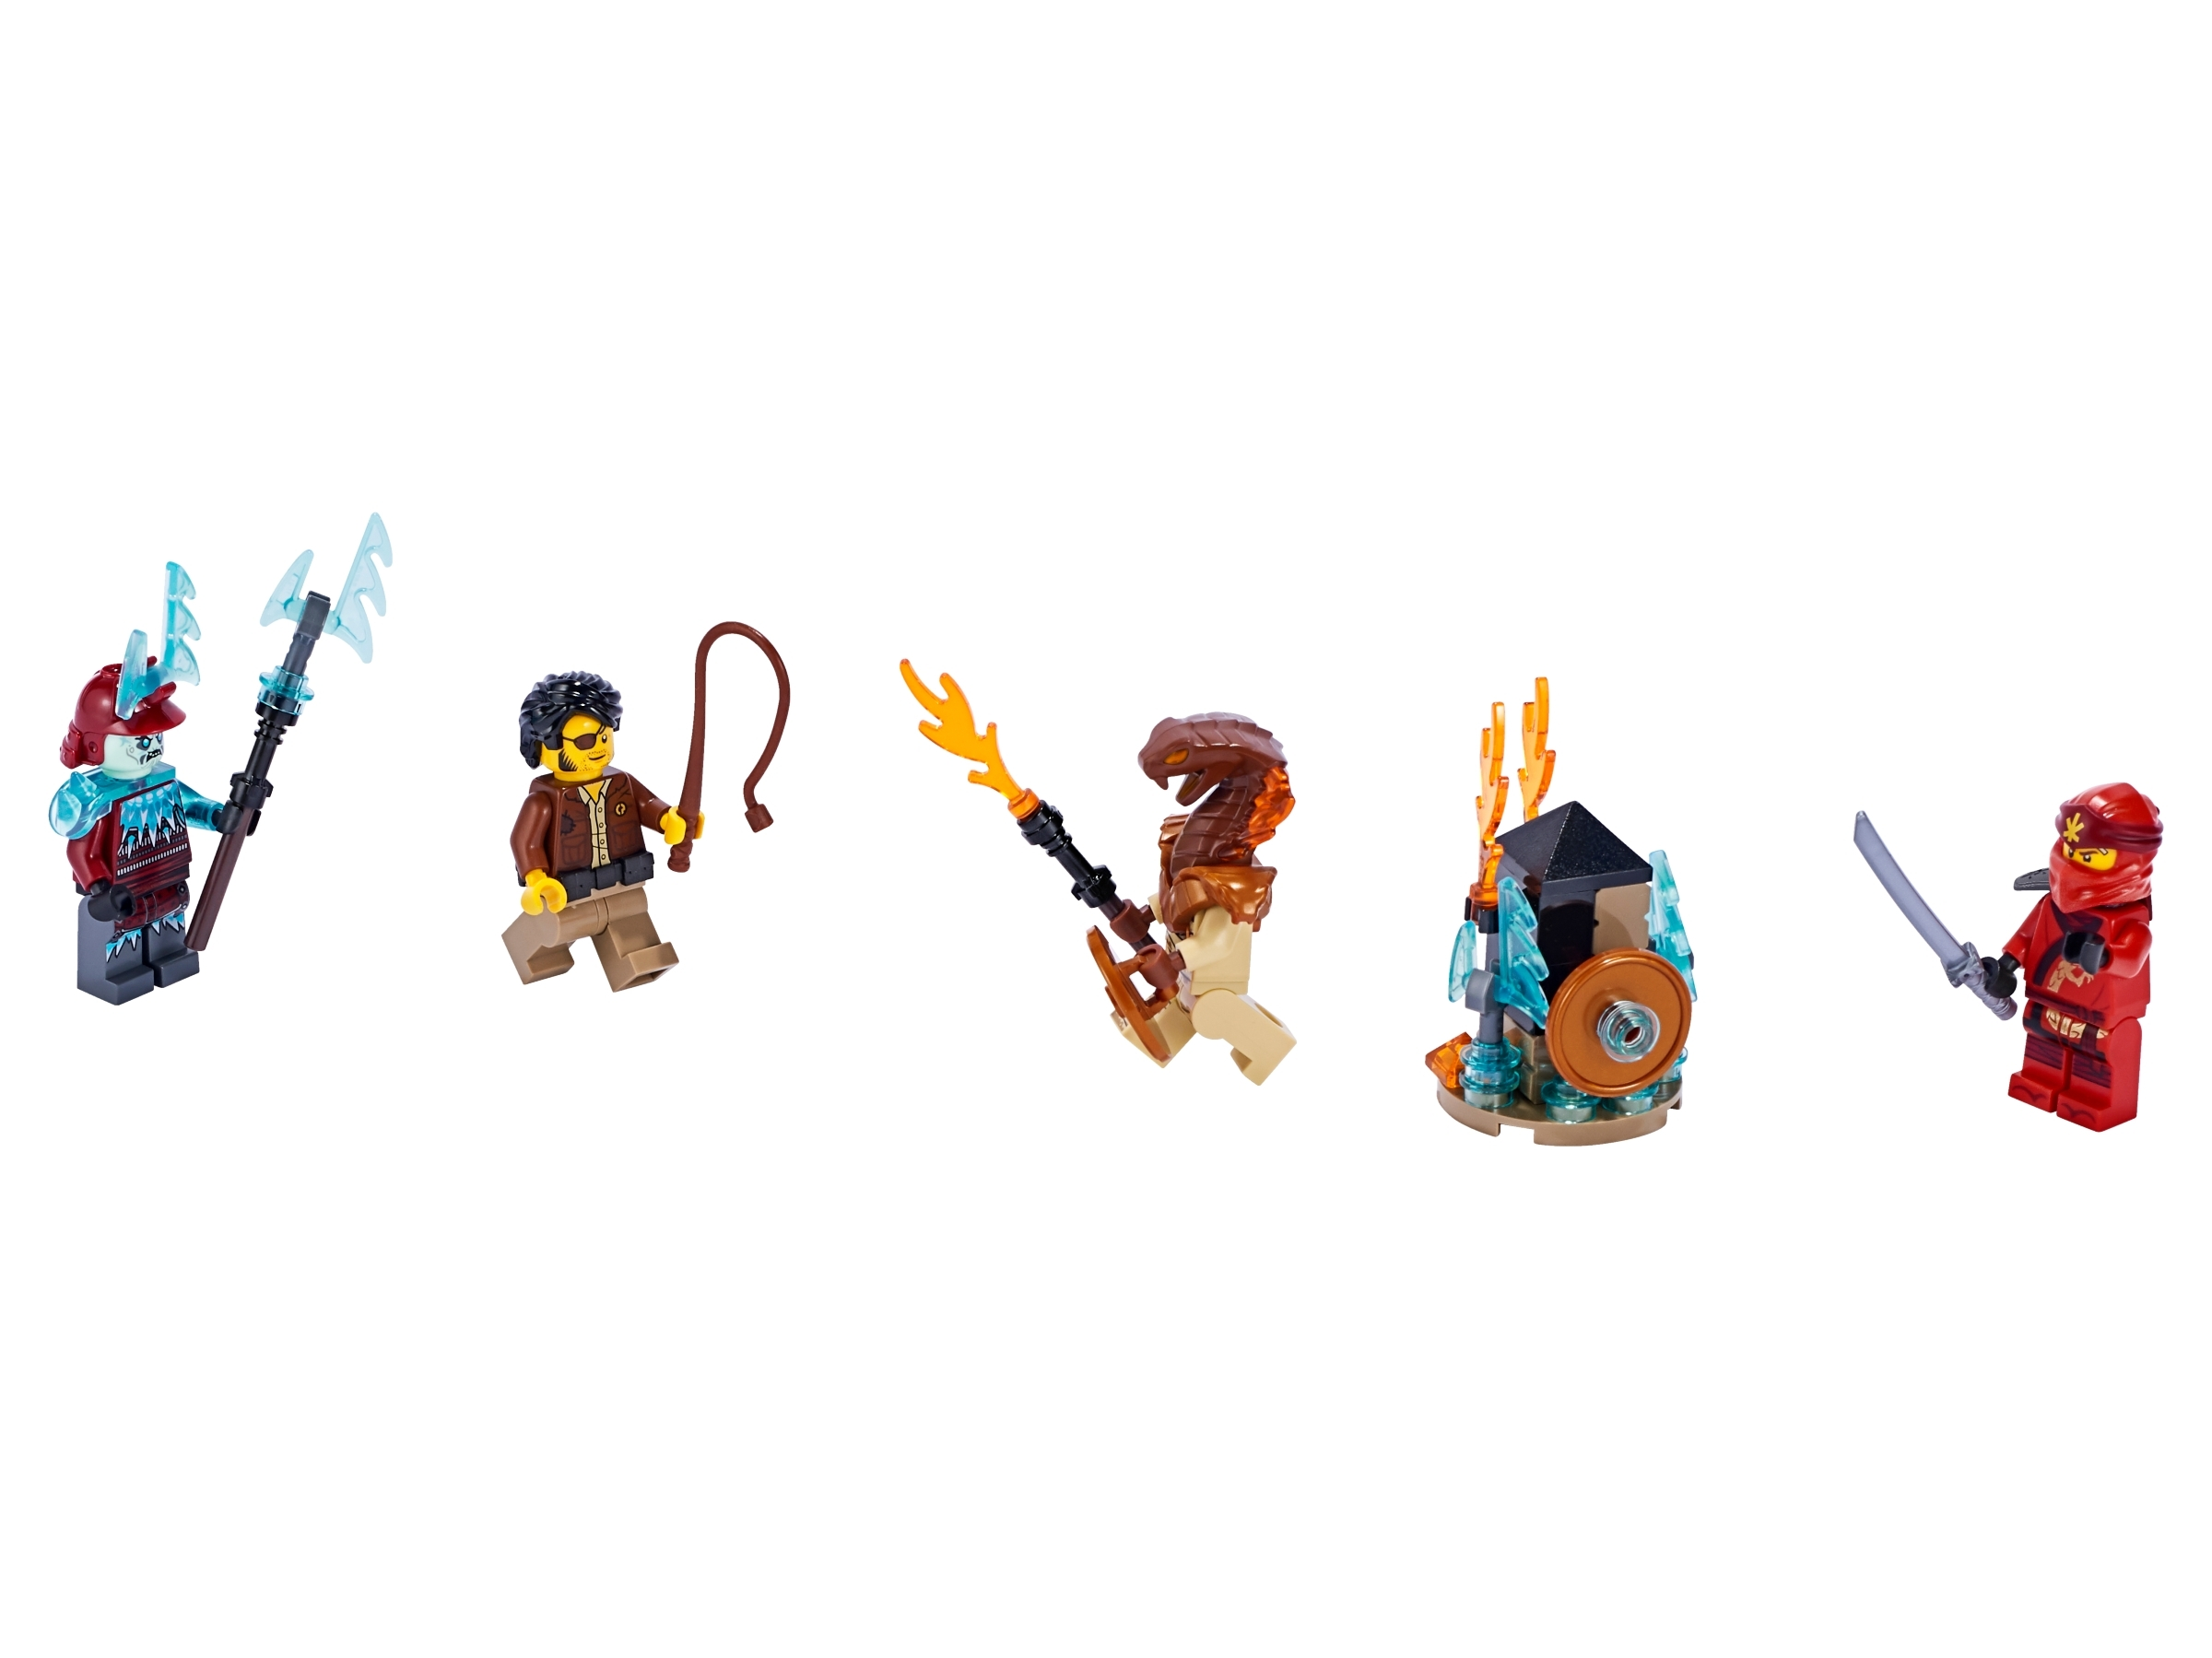 Lego Ninjago 3-pack set Kai Clutch Powers ice fire 40342 BRAND NEW EXCLUSIVE